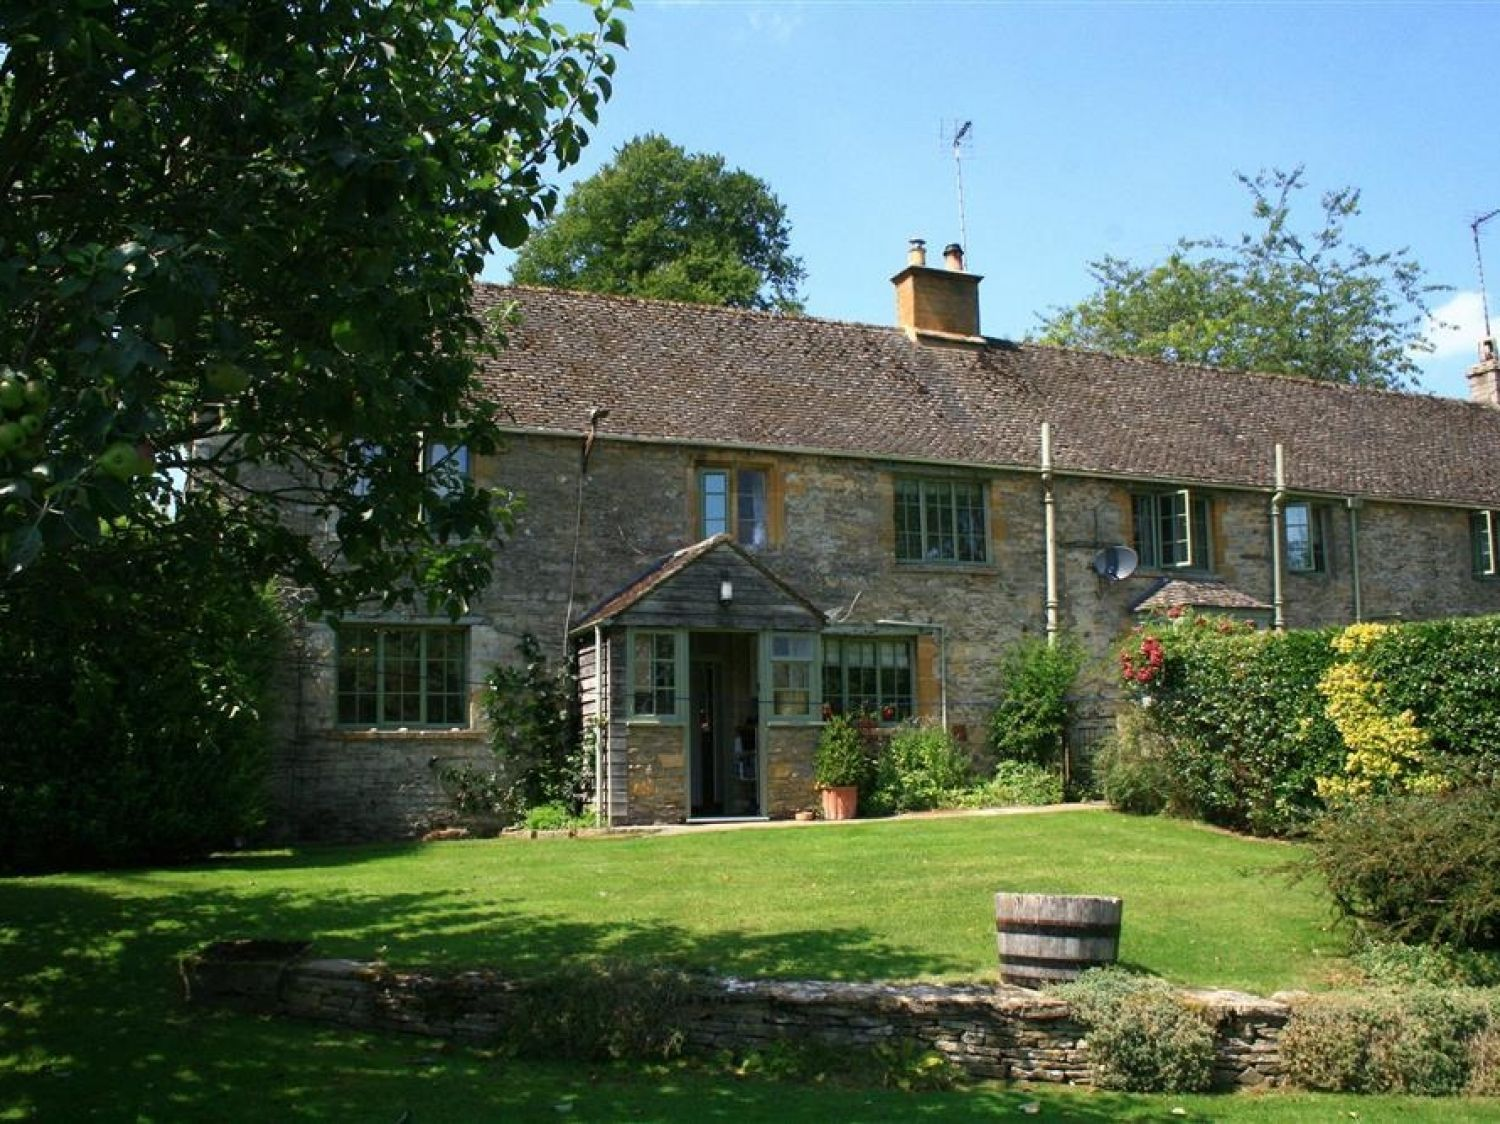 3 Church Cottages, Notgrove - Cotswolds - 988792 - photo 1